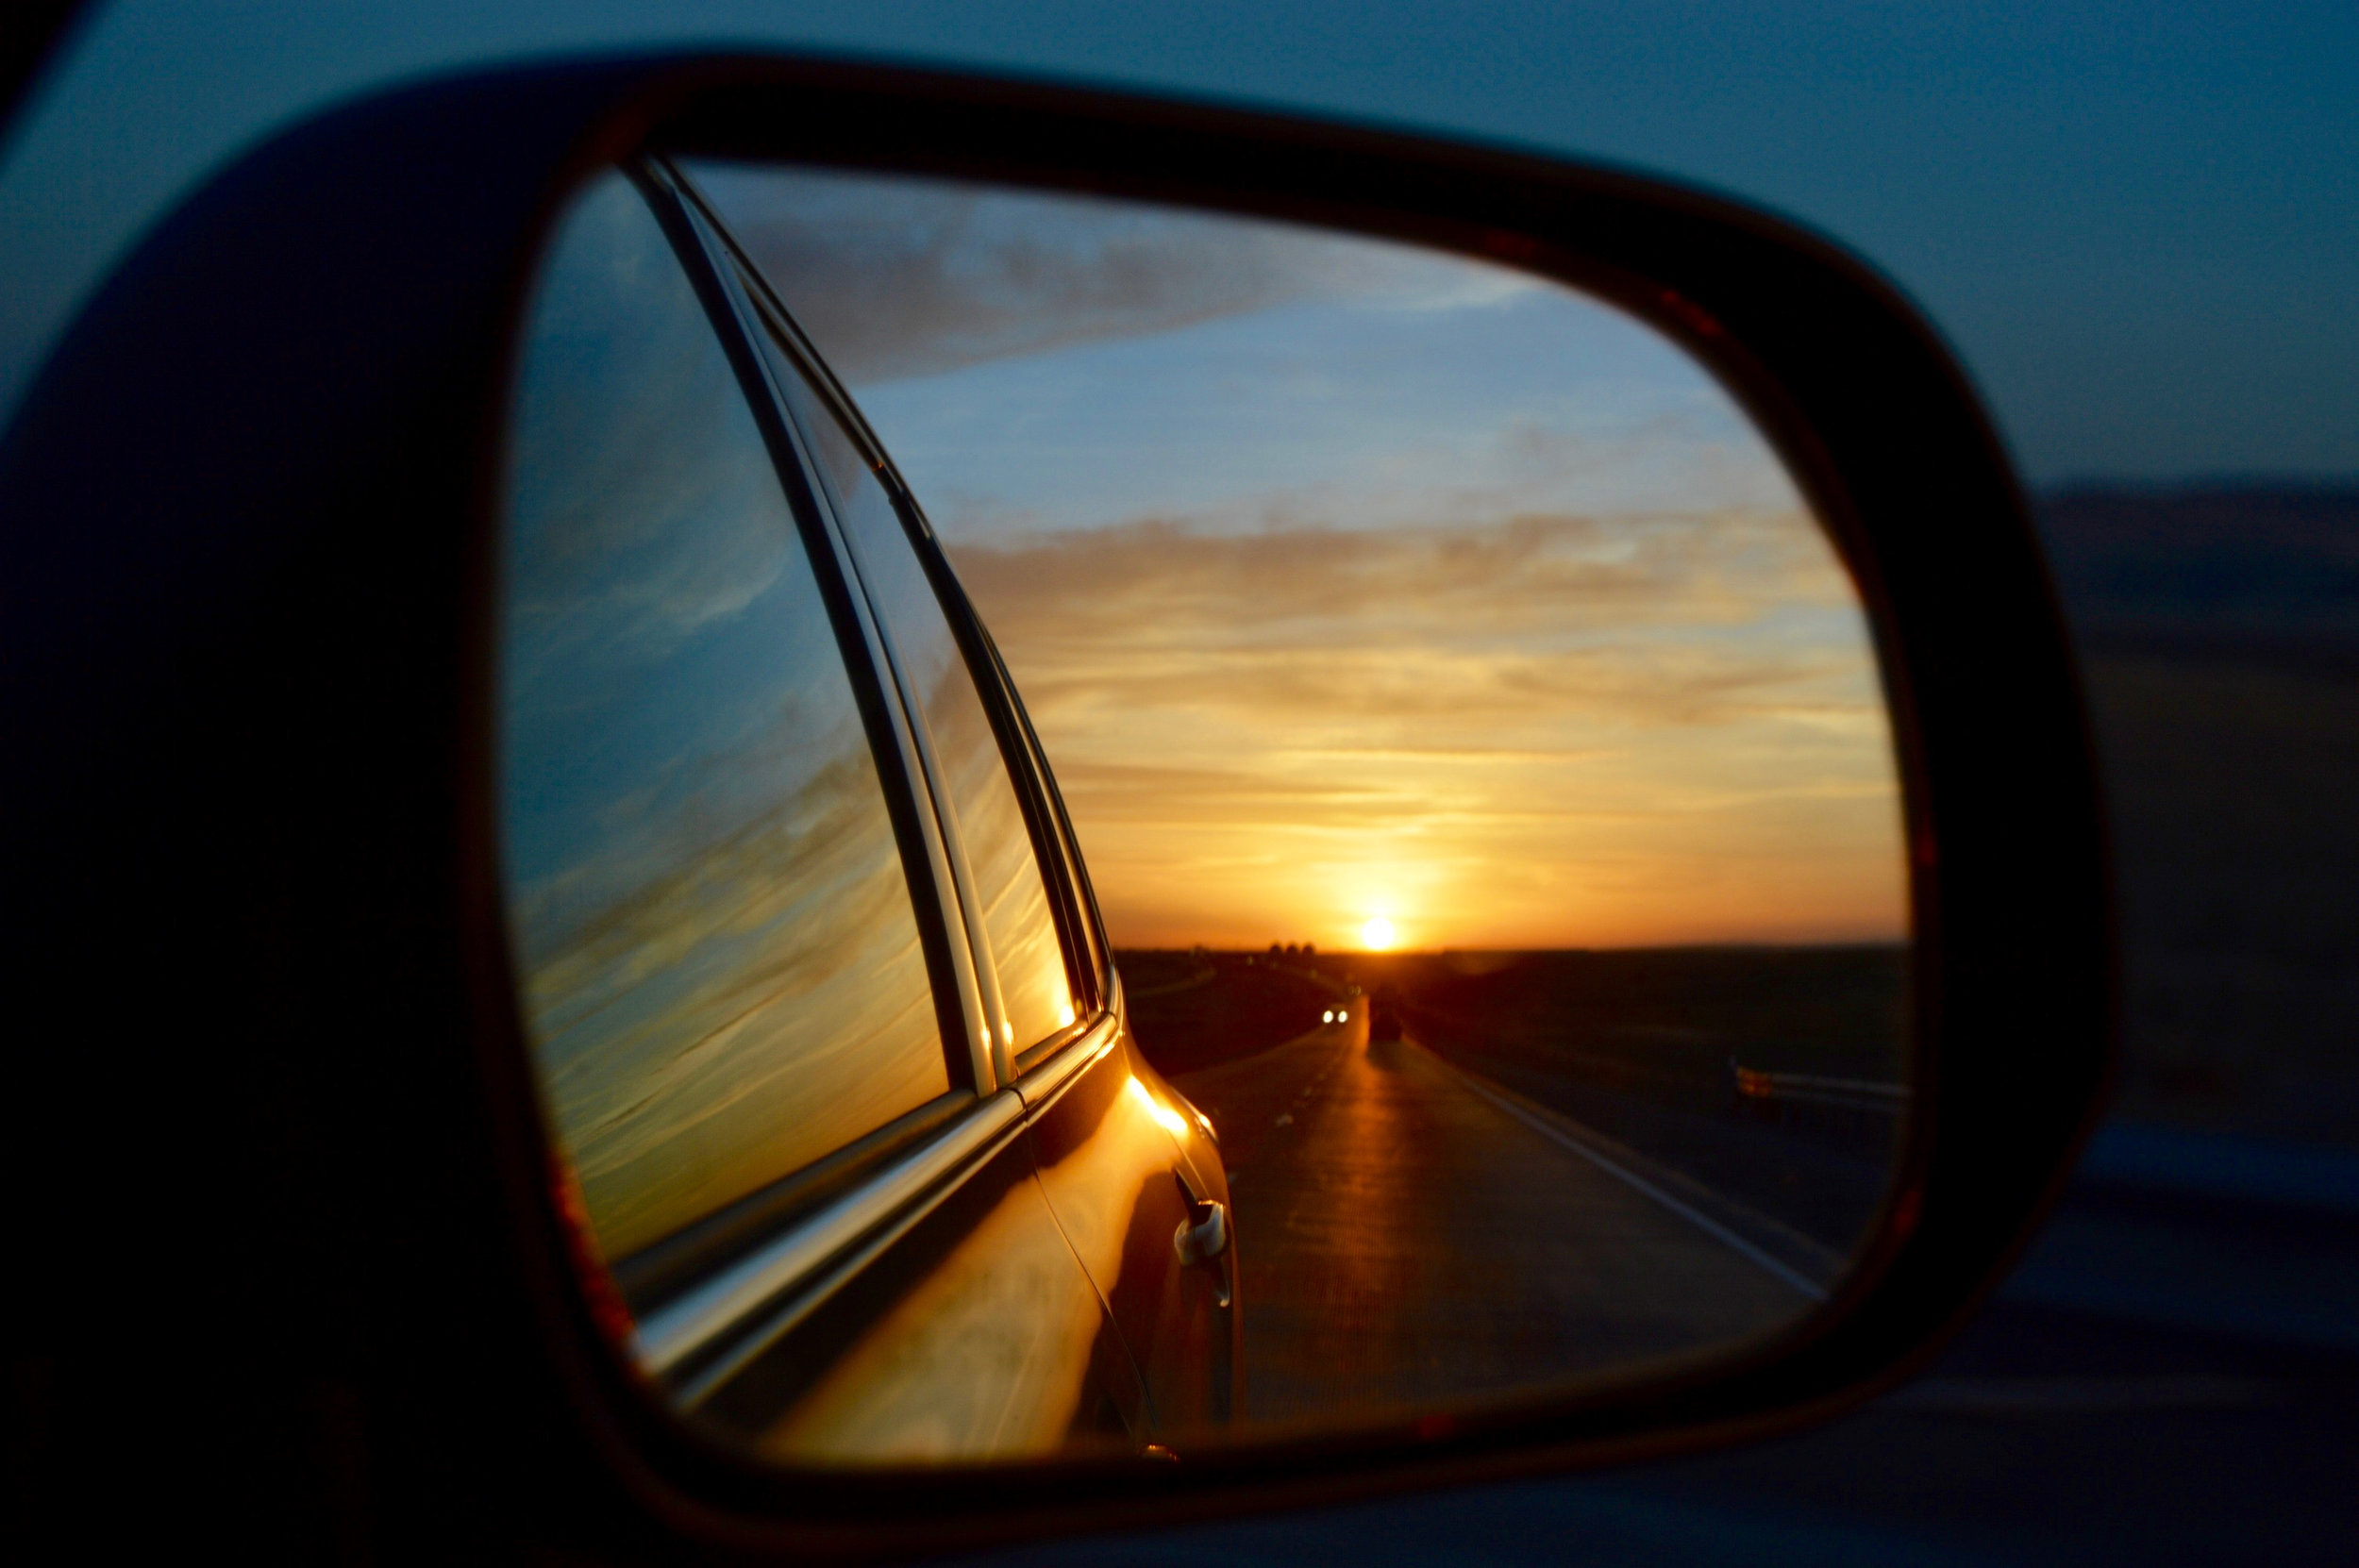 rear view mirror sunset.jpg